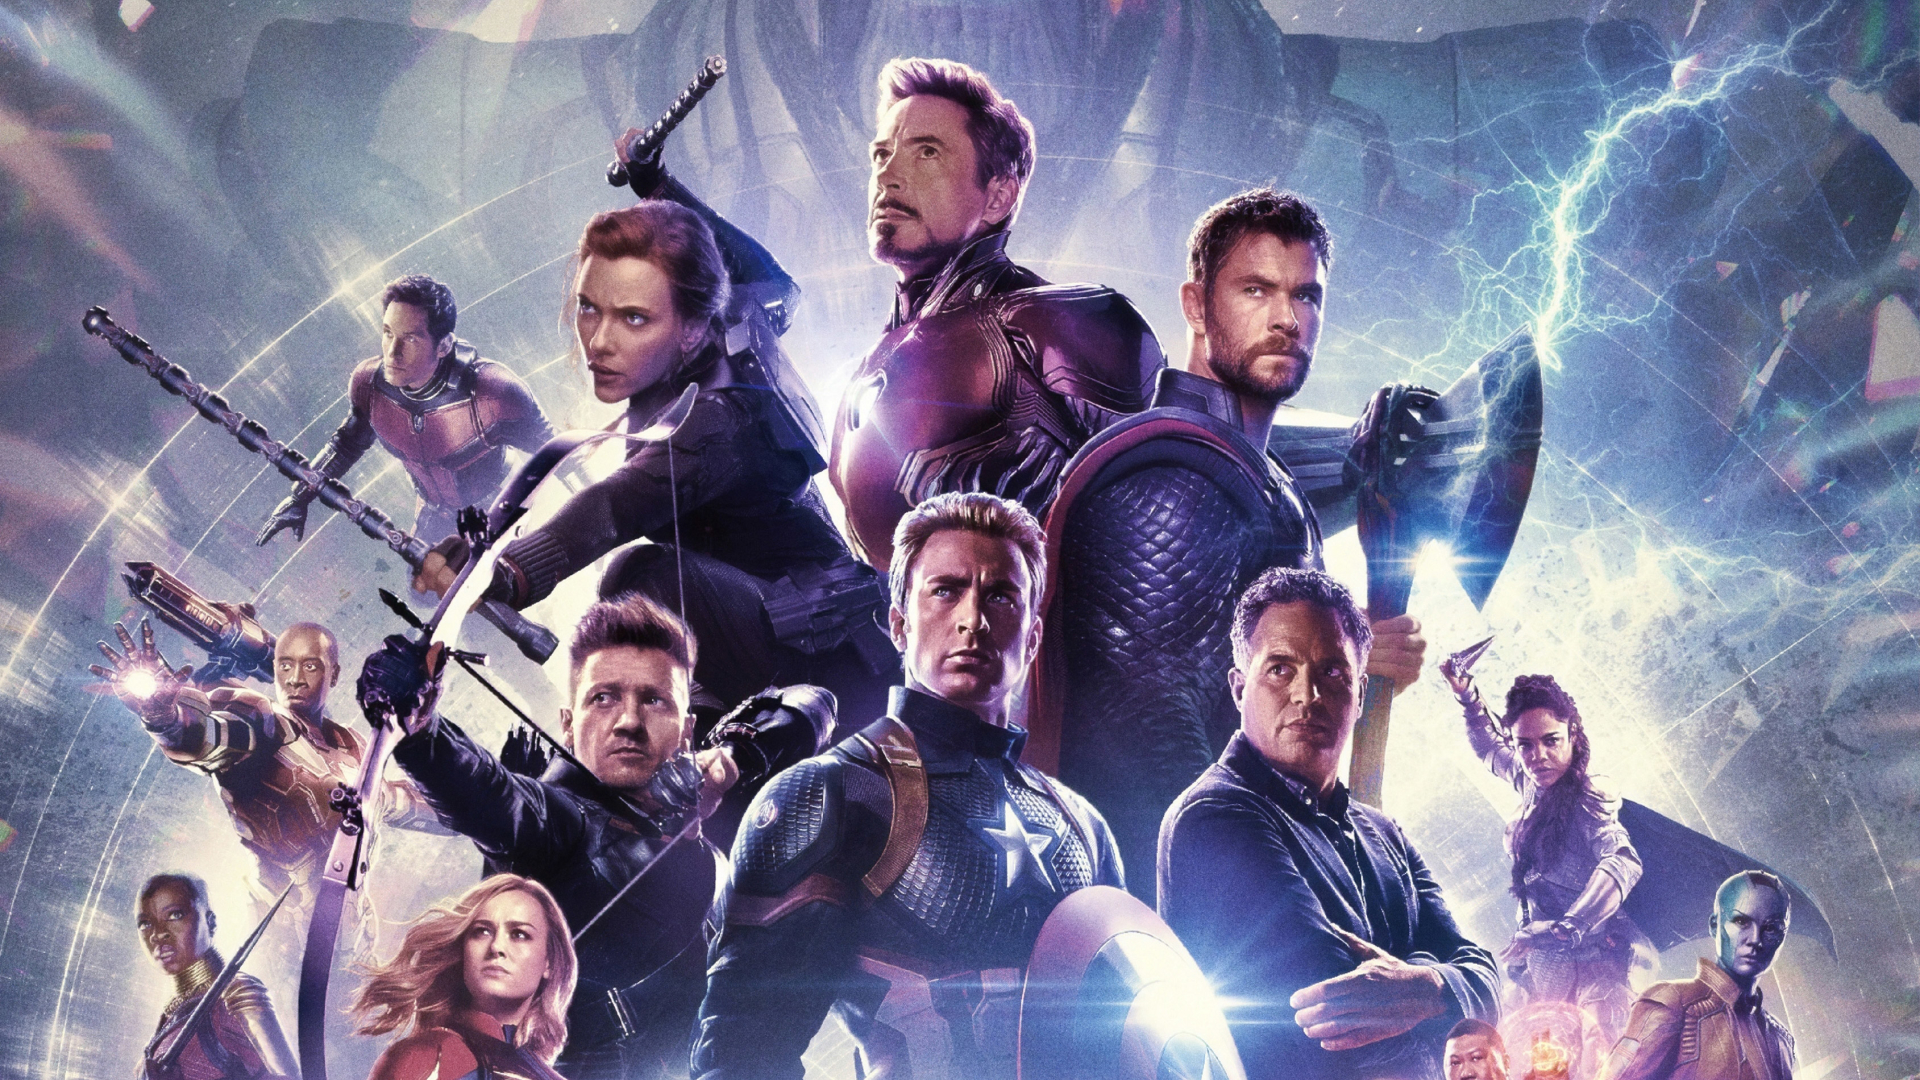 1920x1080 Avengers Endgame International Poster 1080p Laptop